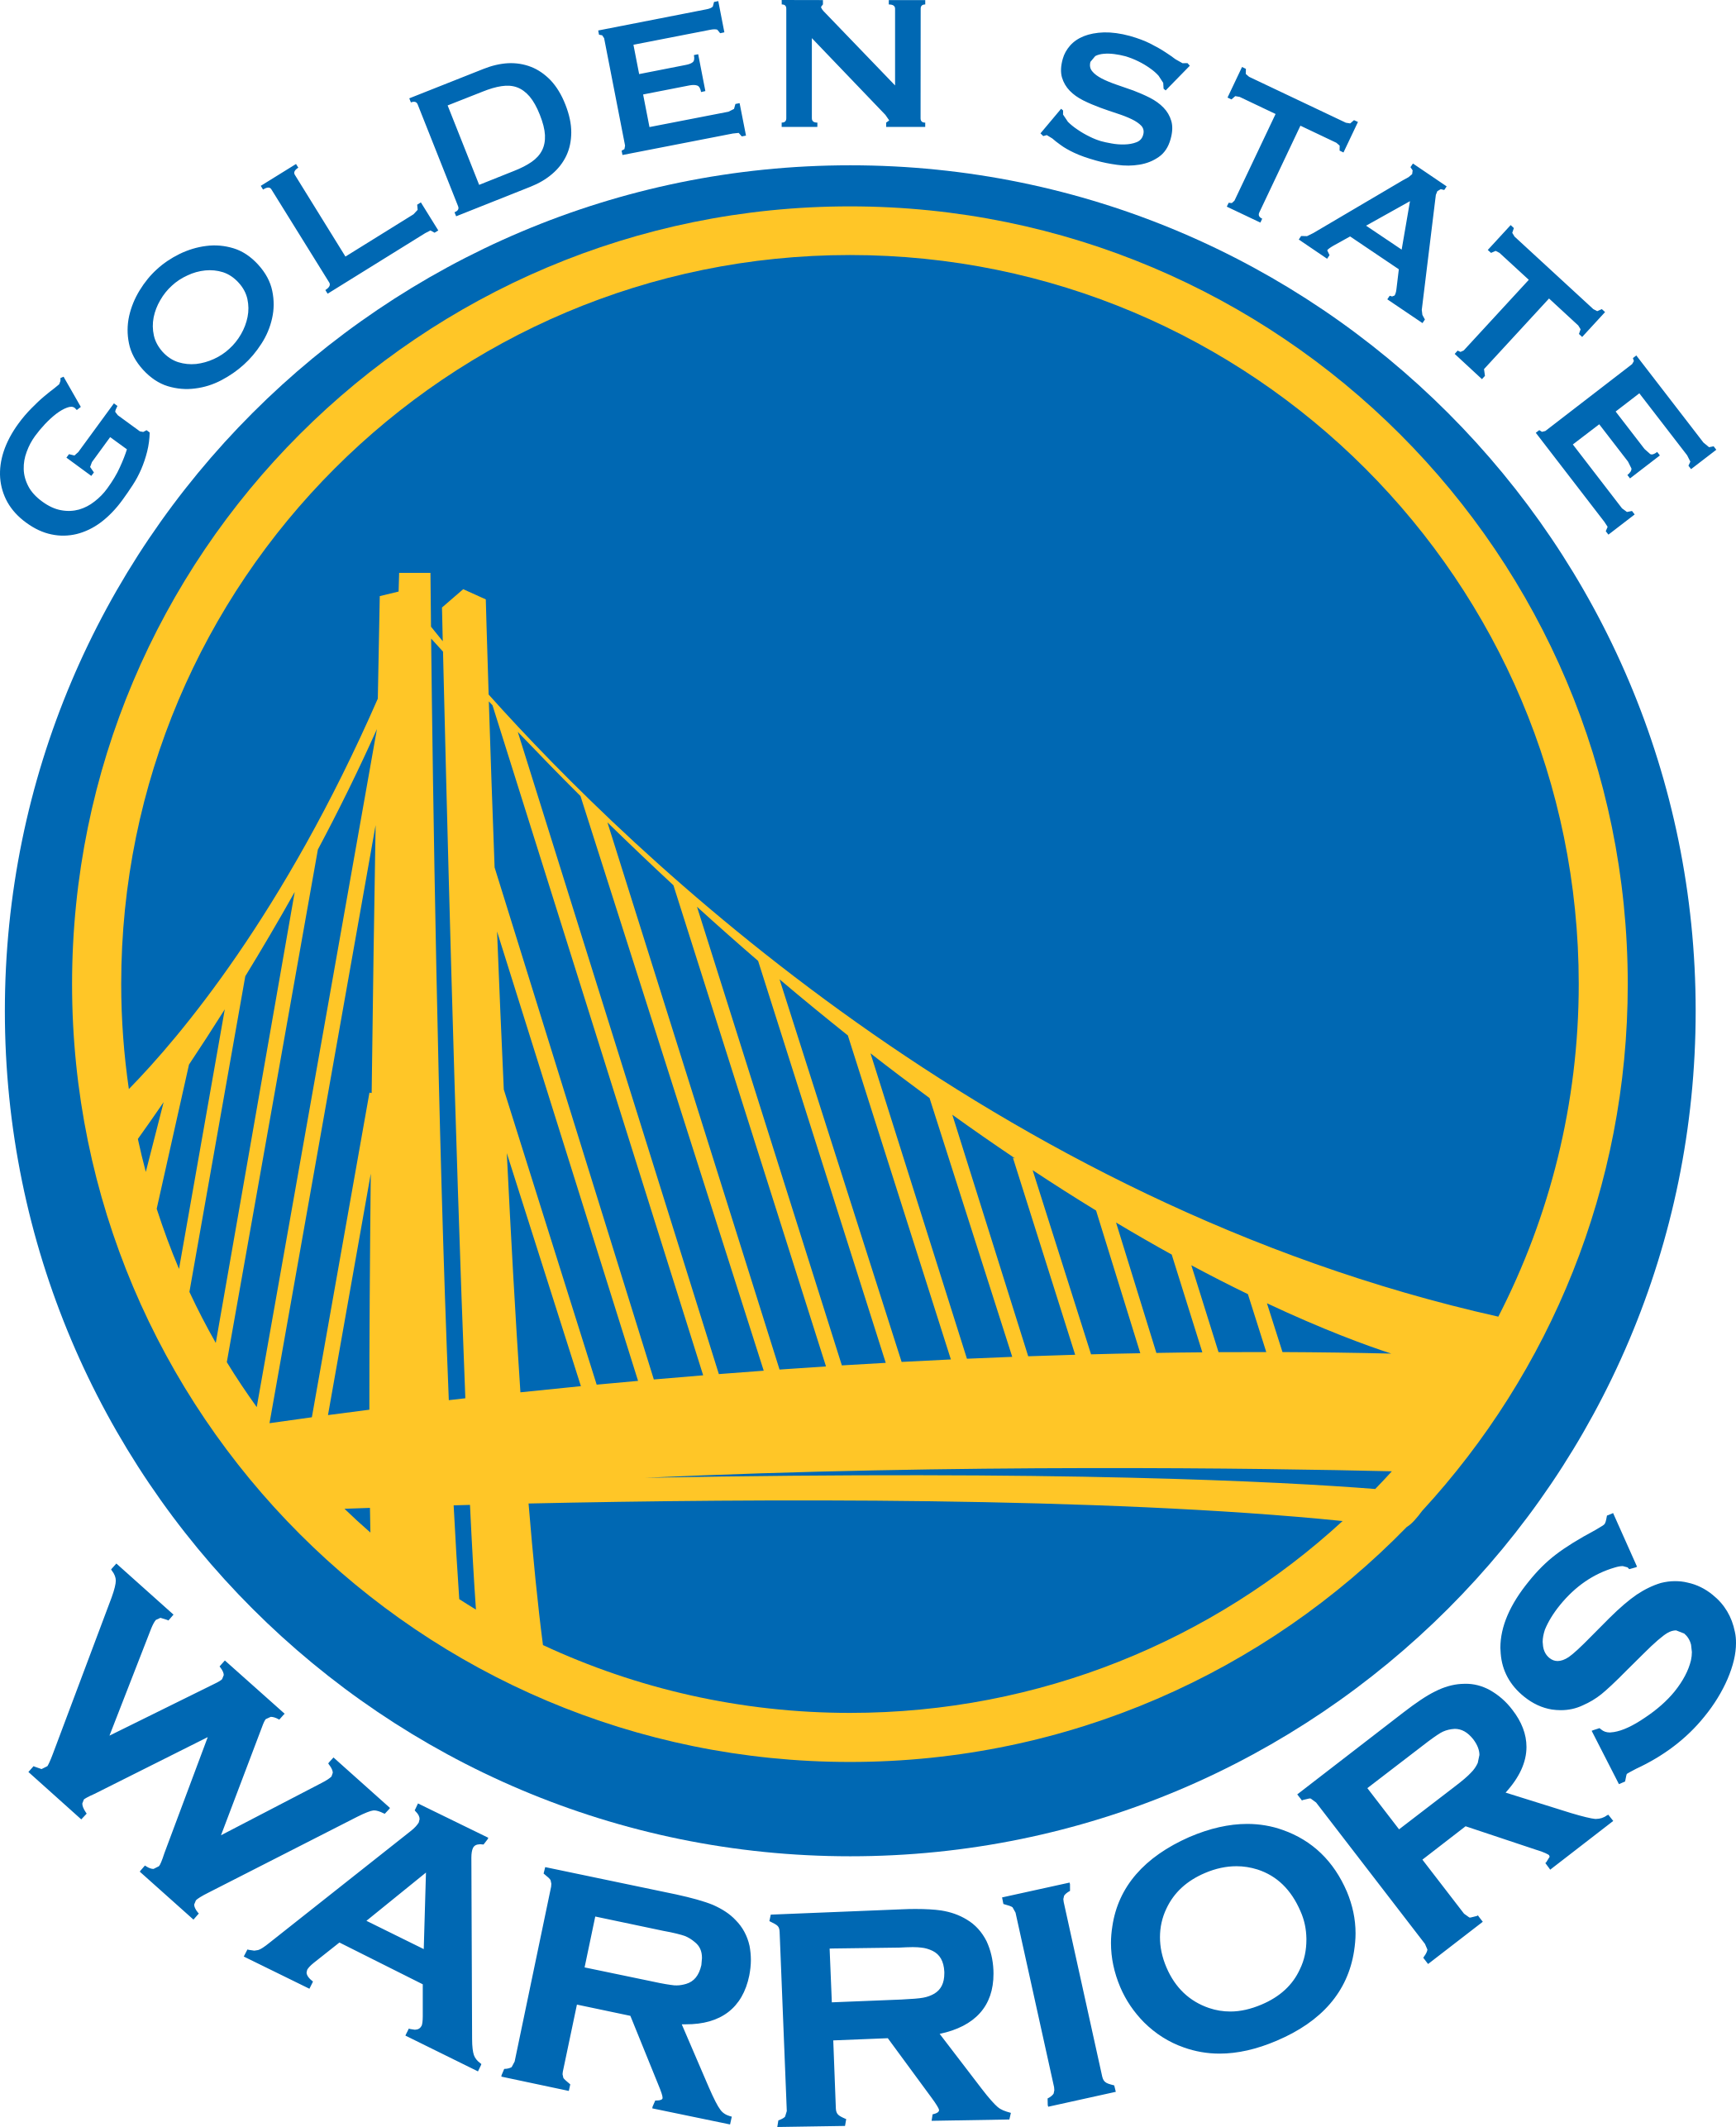 golden state warriors logo 1 - Golden State Warriors Logo